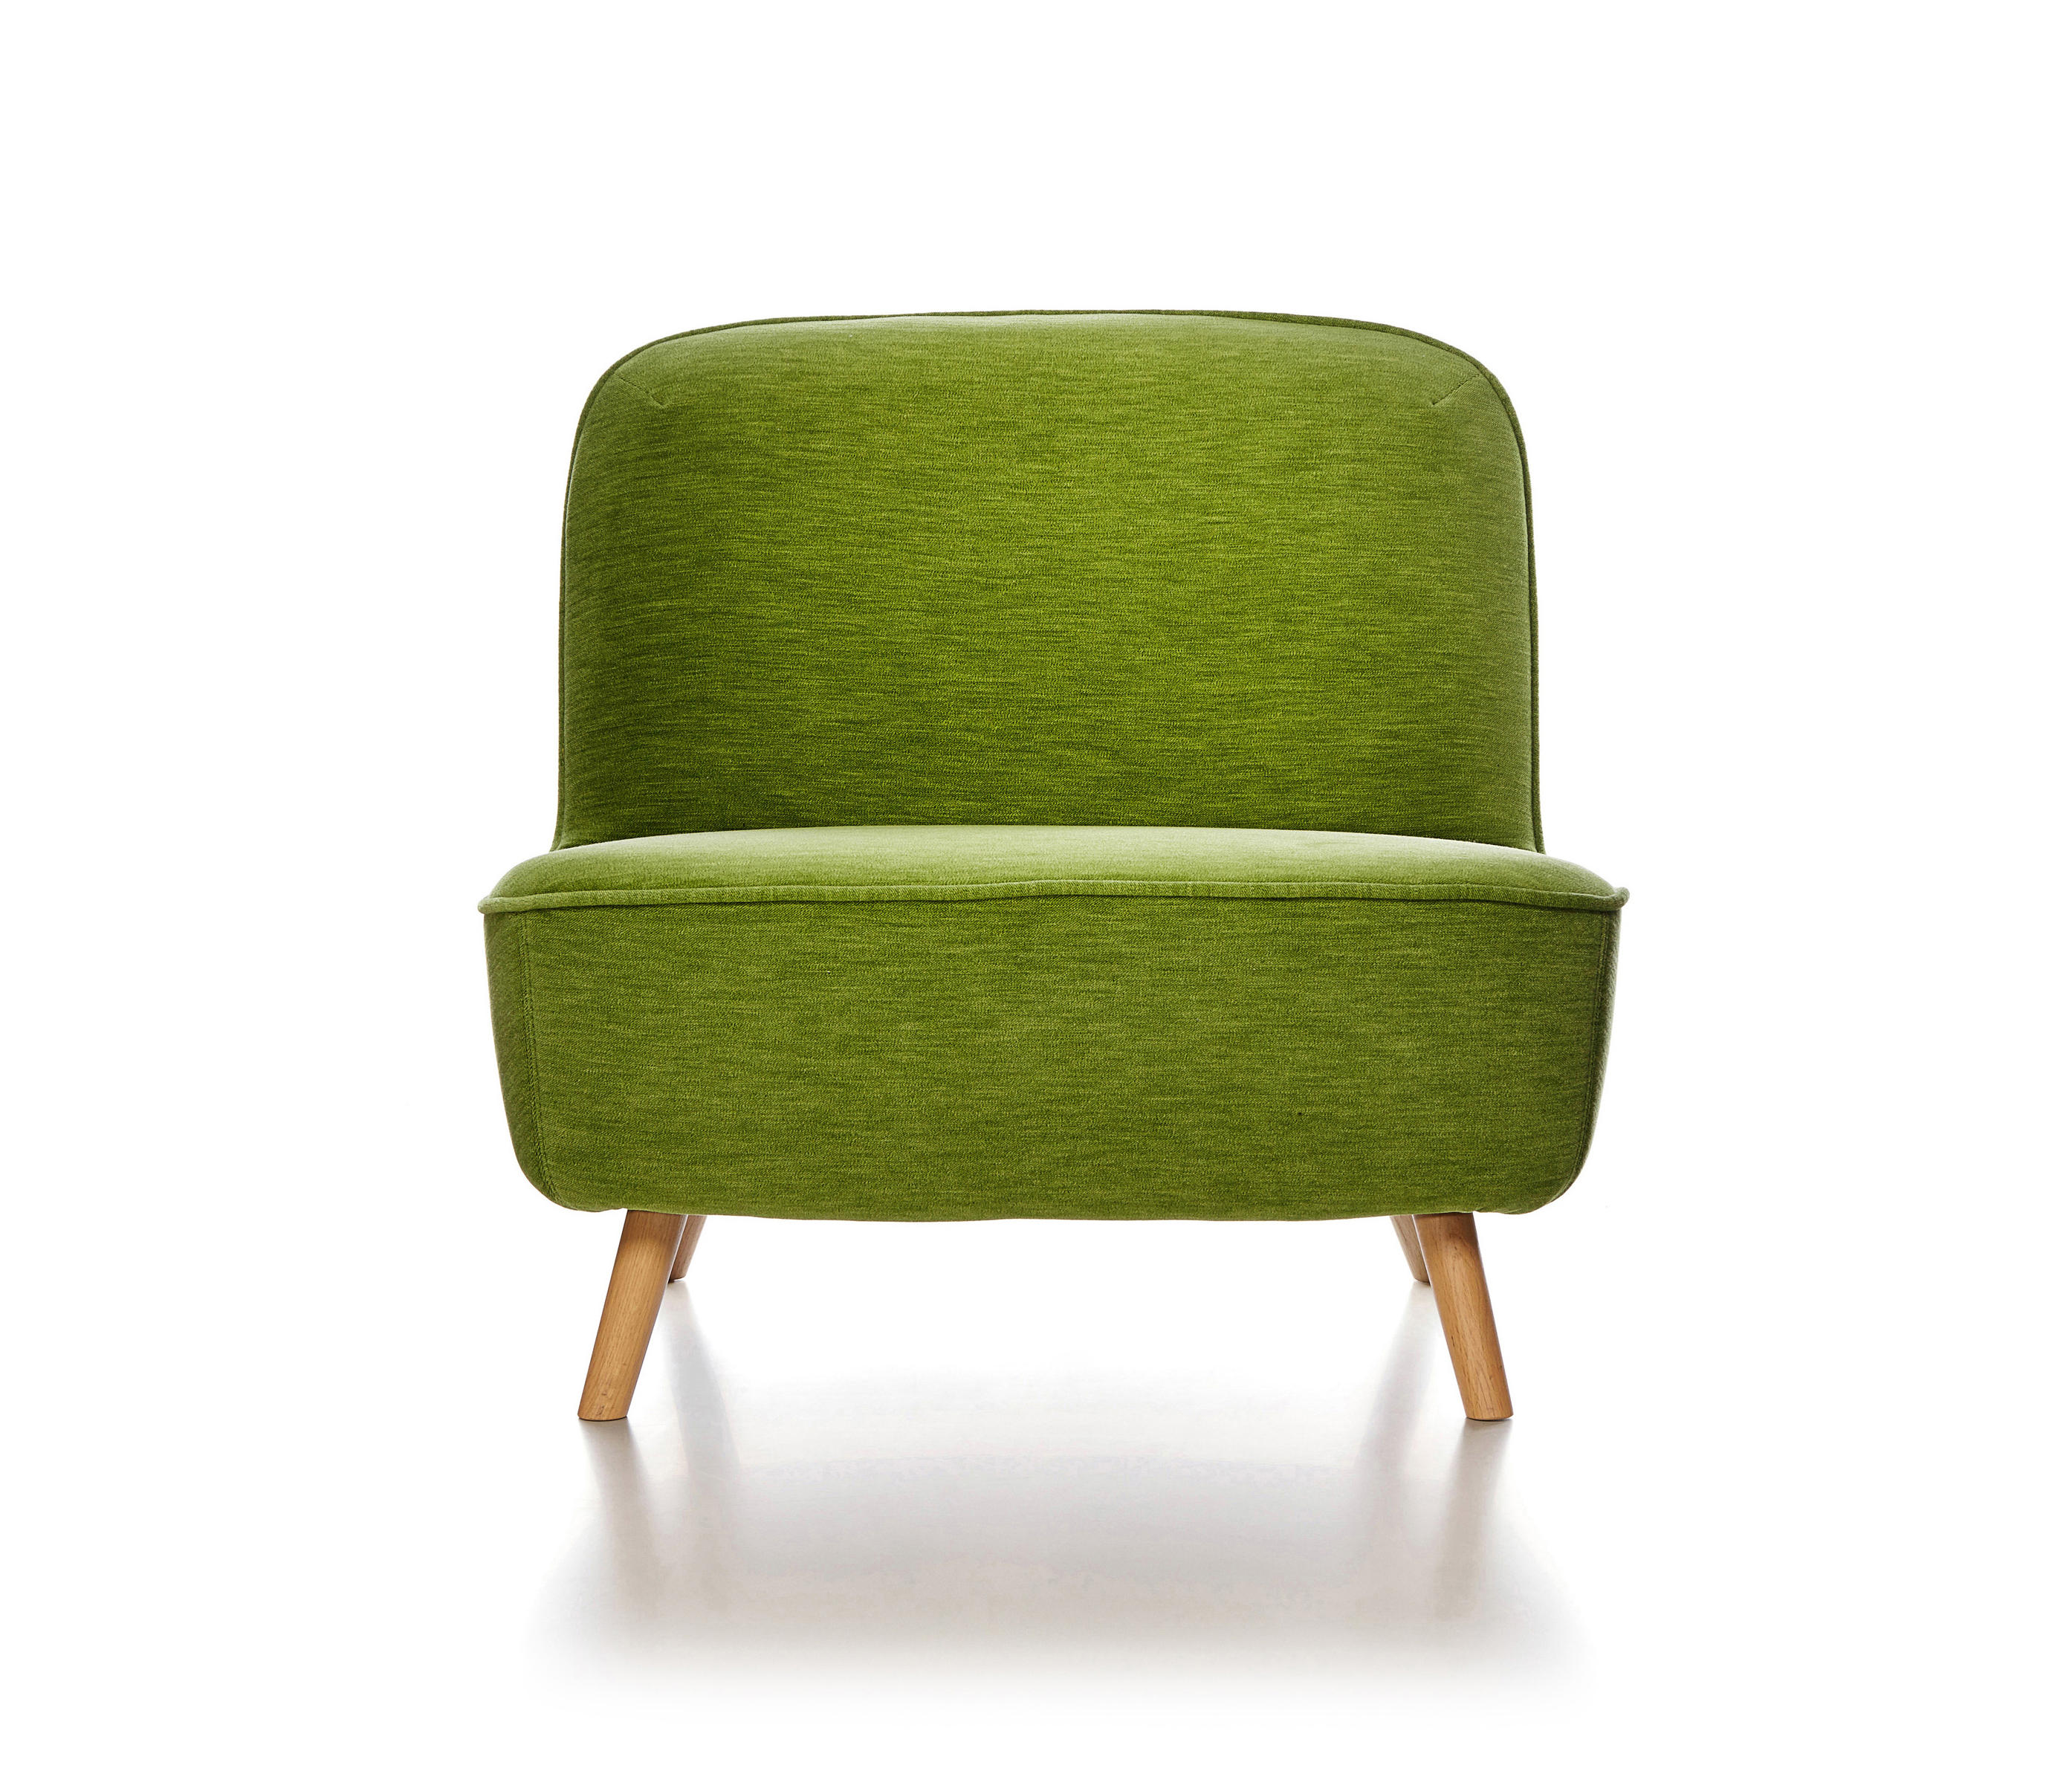 Delicieux Cocktail Chair By Moooi | Armchairs ...